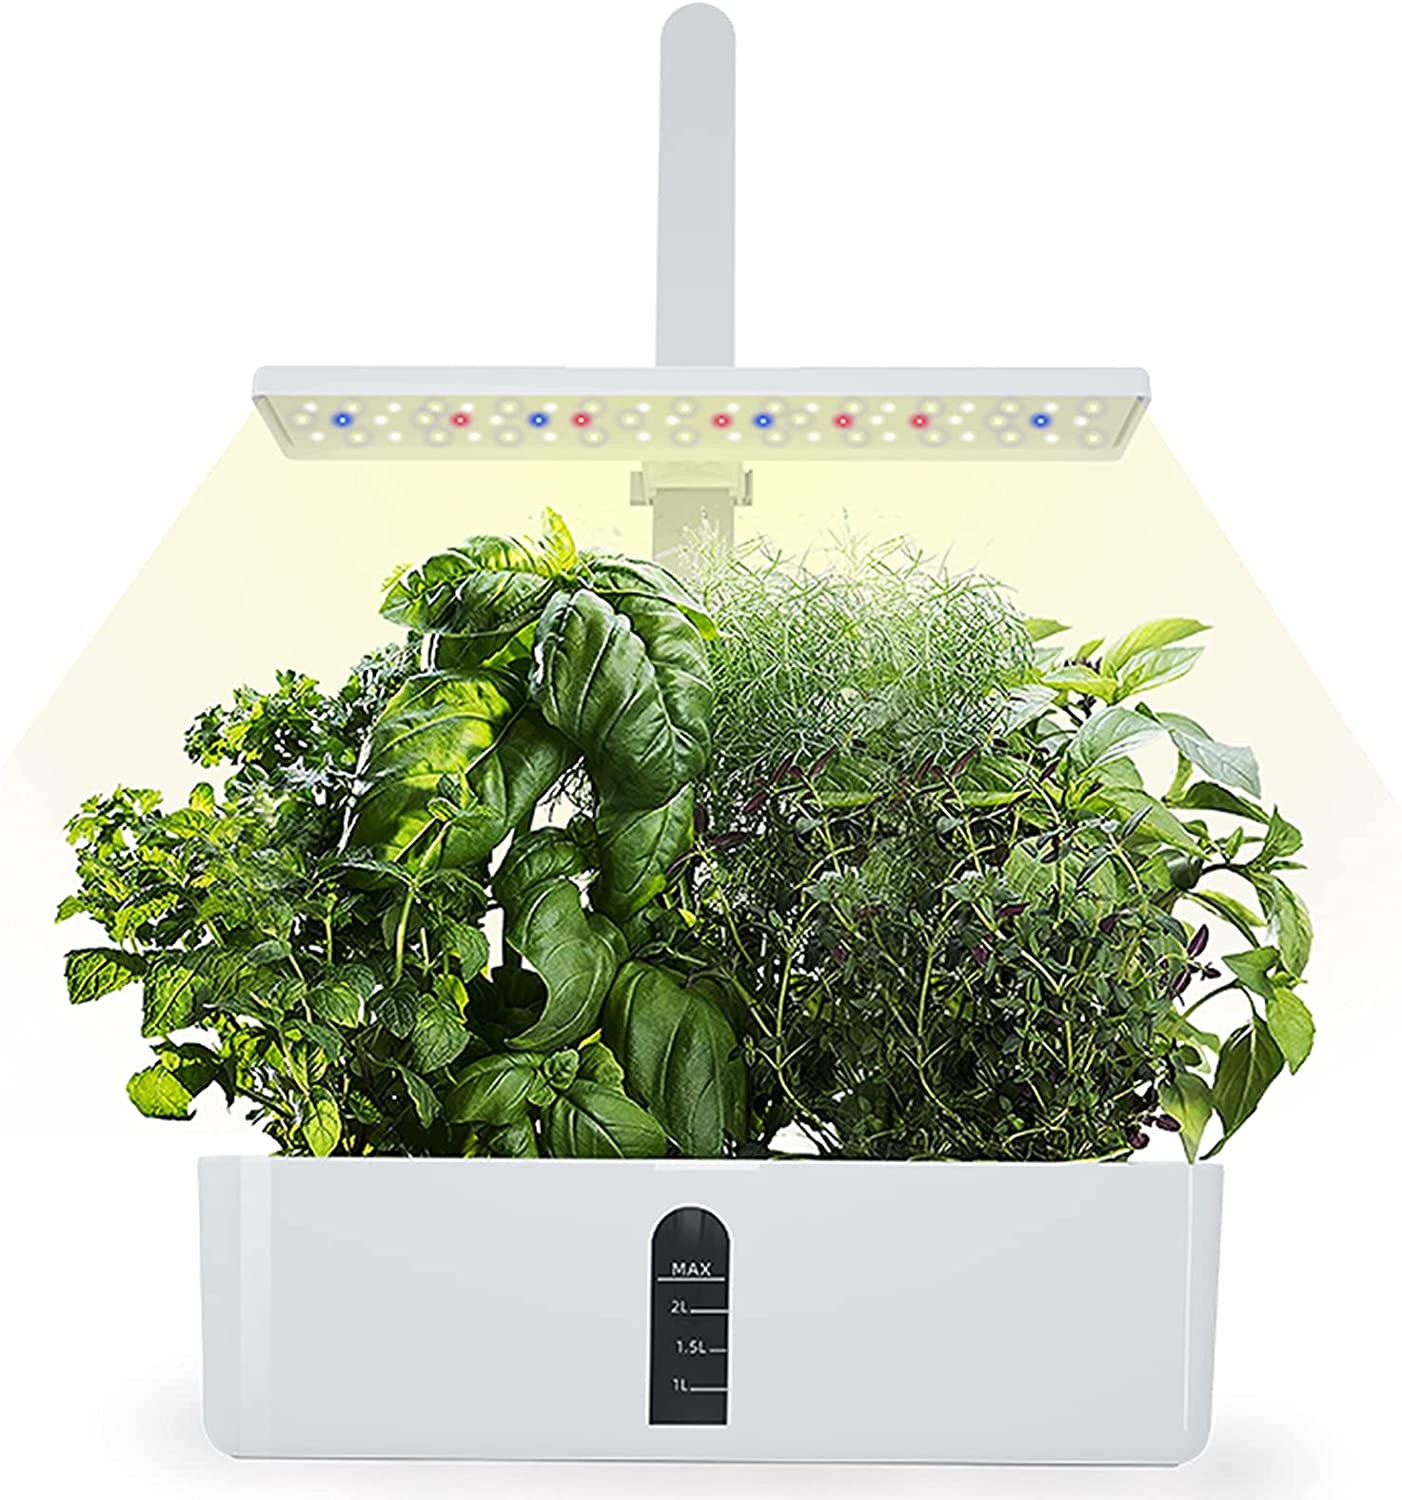 Indoor Hydroponics Growing System, Langkou 9 Seed pods Herb Garden Germination Kit with Automatic Timer LED Grow Light, Height Adjustable, Vegetable Gardening System for Home Kitchen